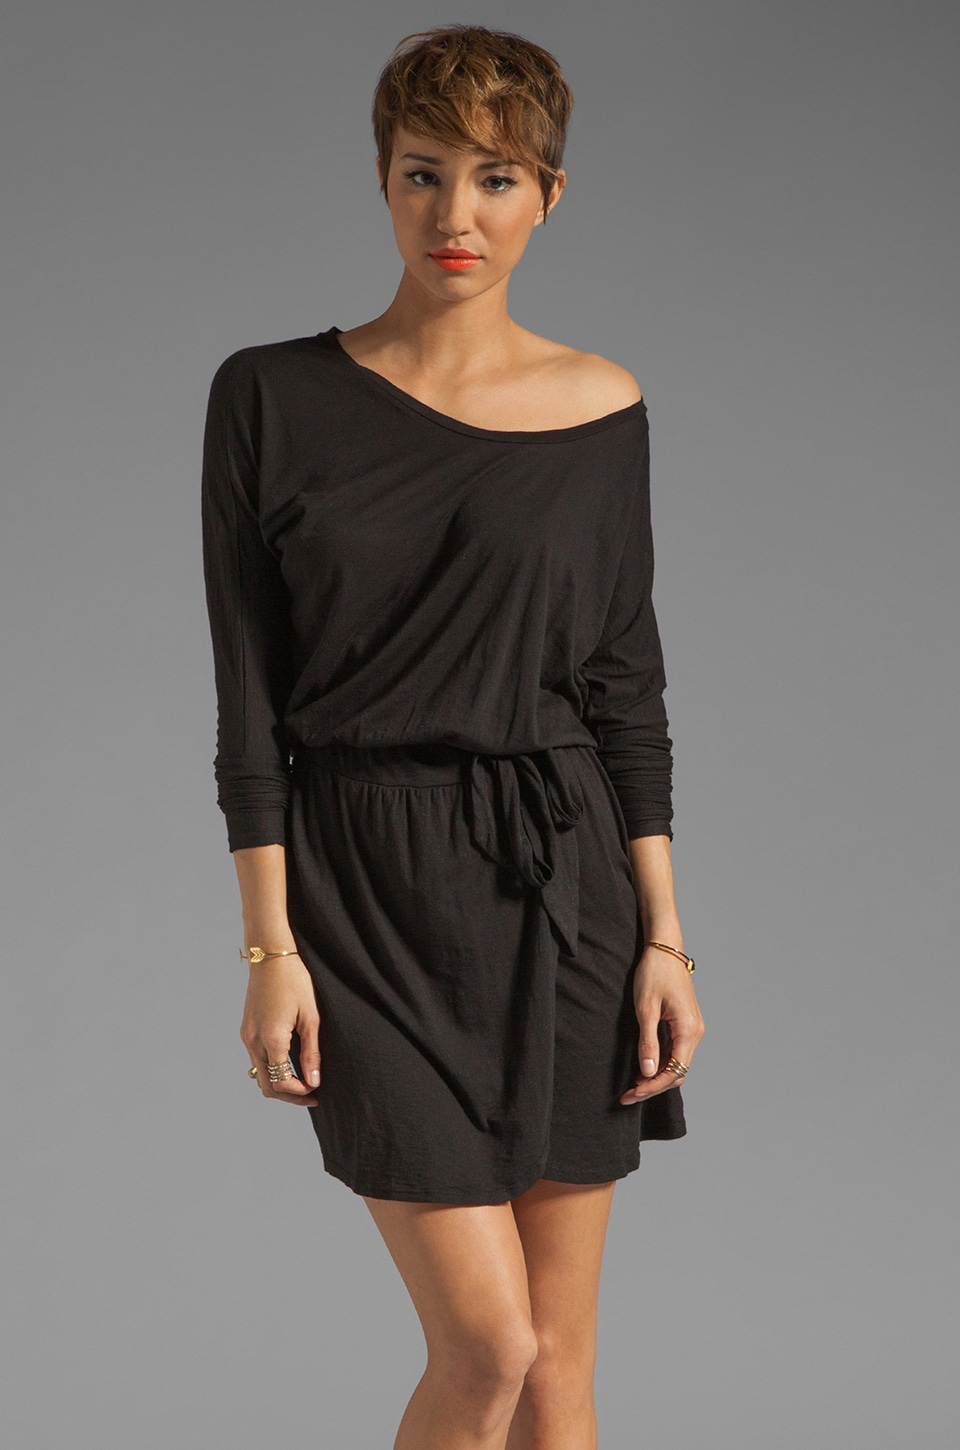 LA Made Slub Jersey 3/4 Sleeve Open Neck Dress in Black